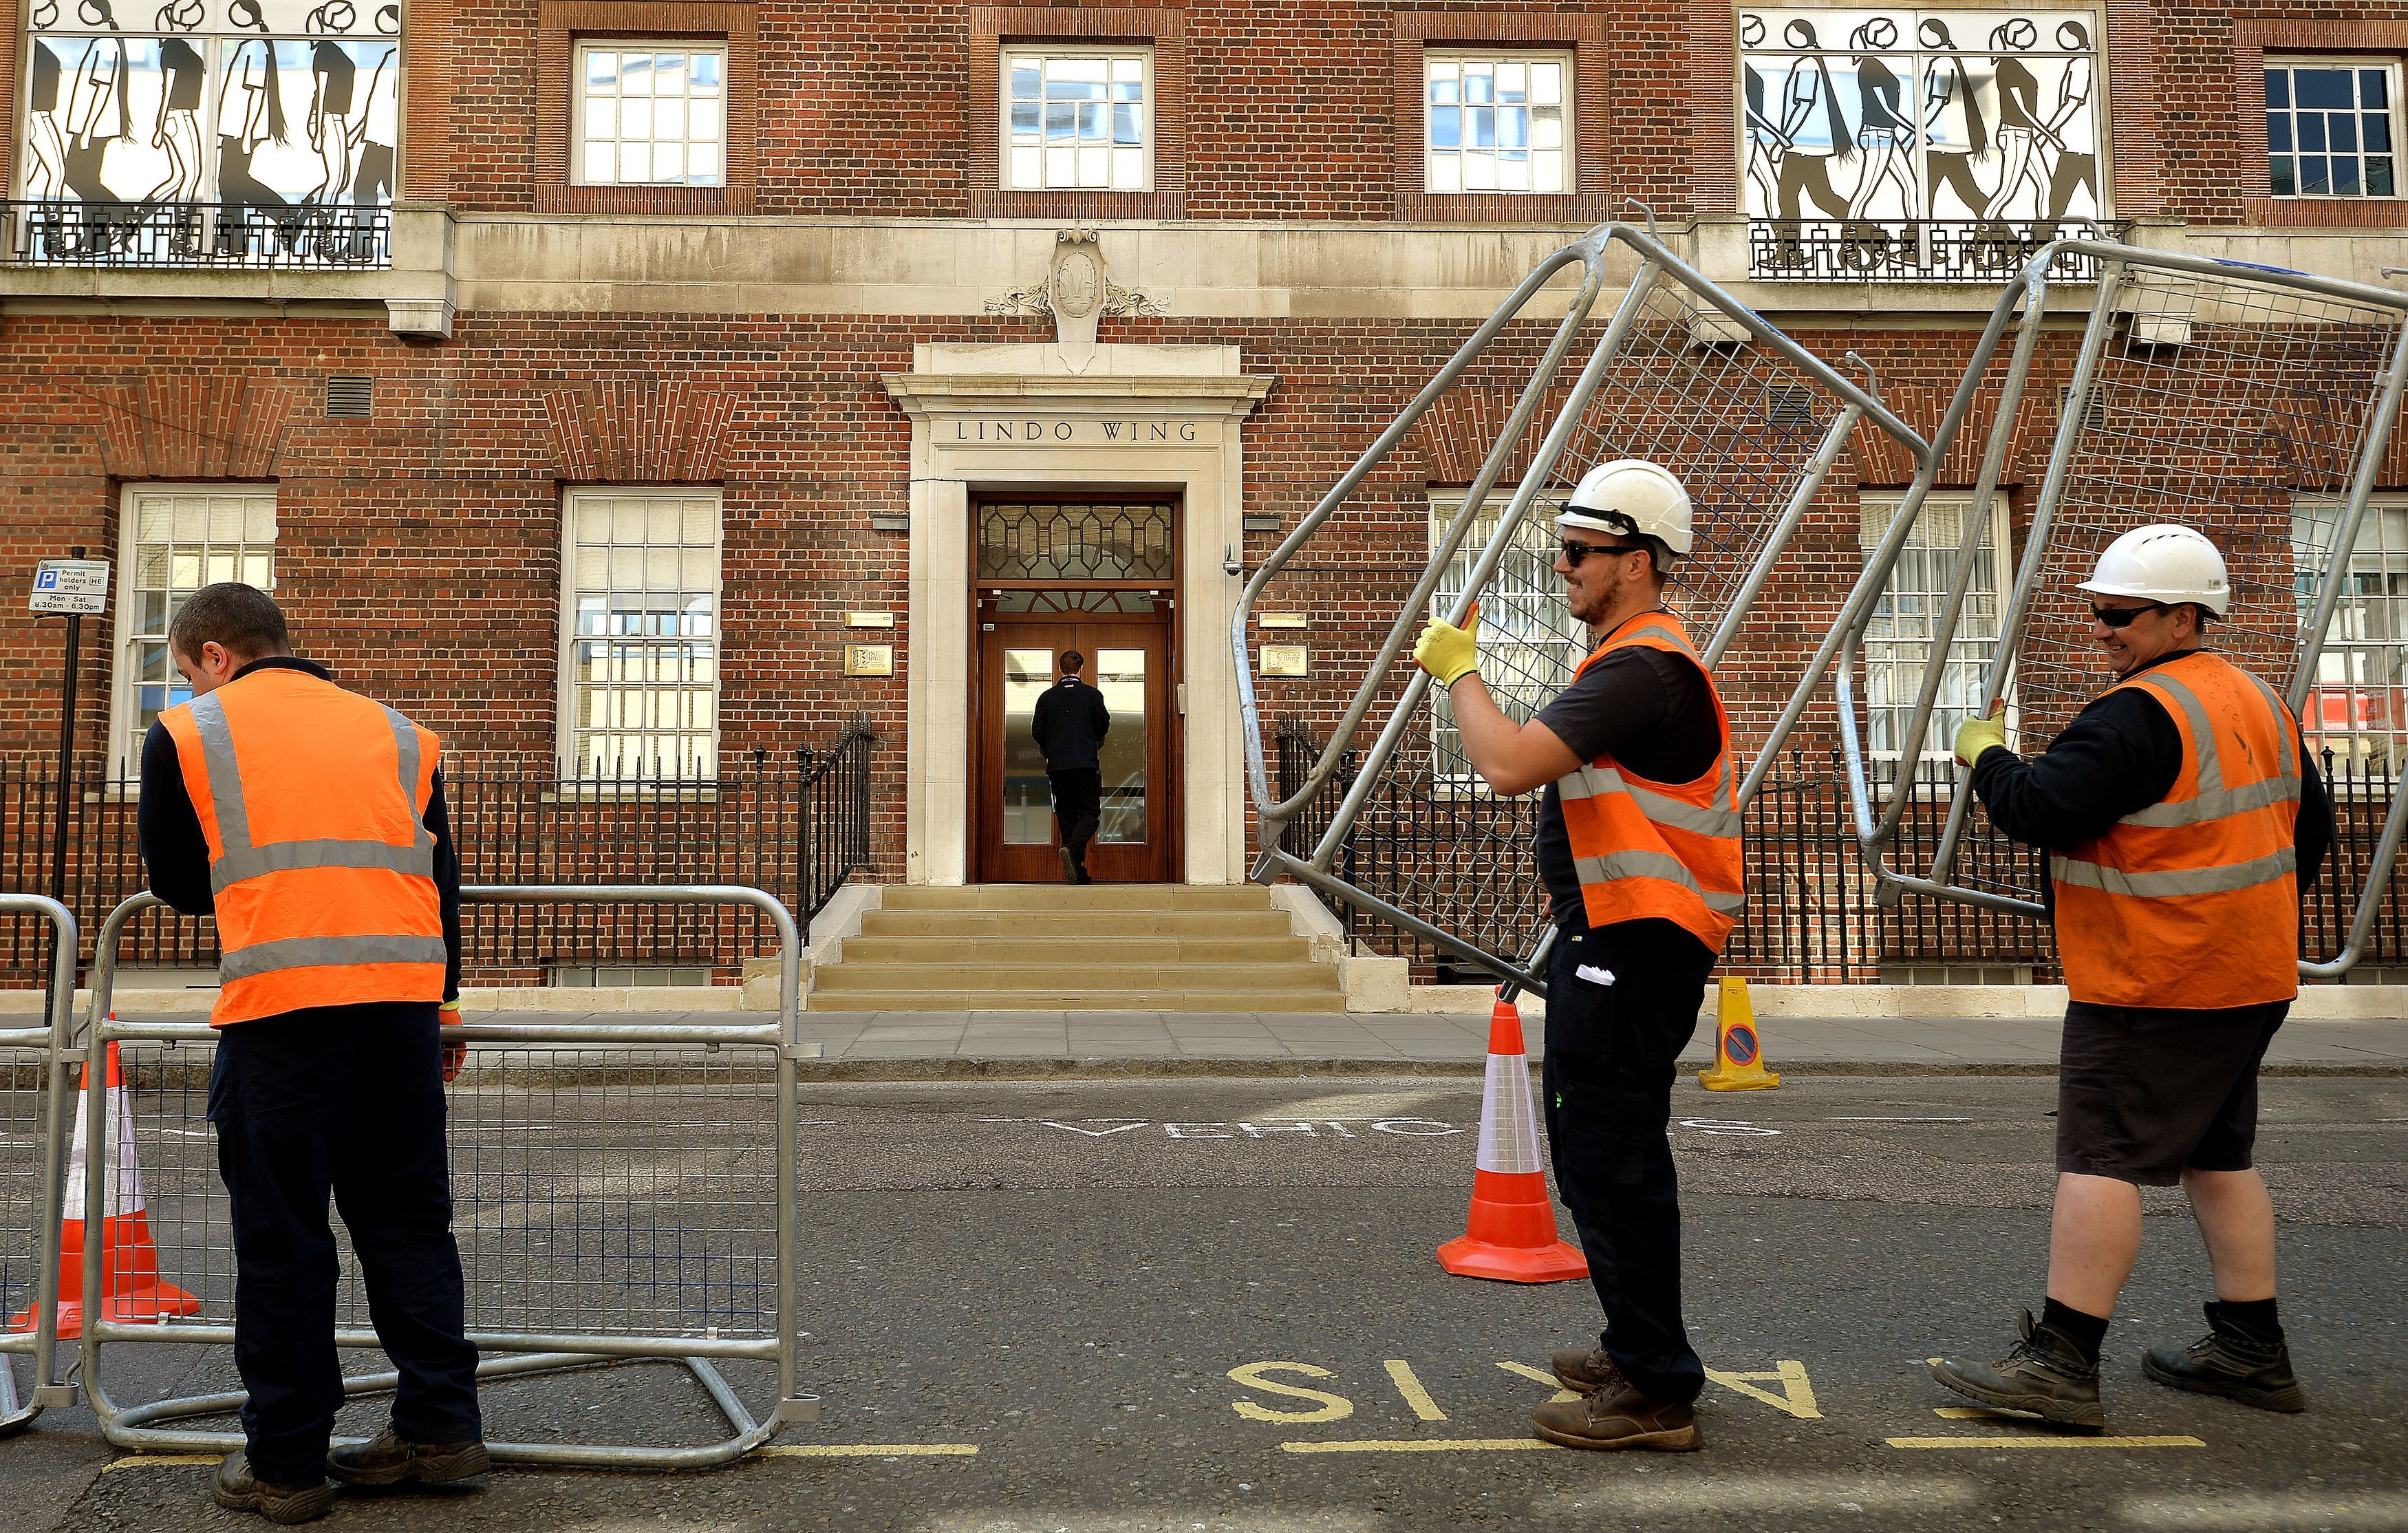 Men set up barriers for the second royal baby